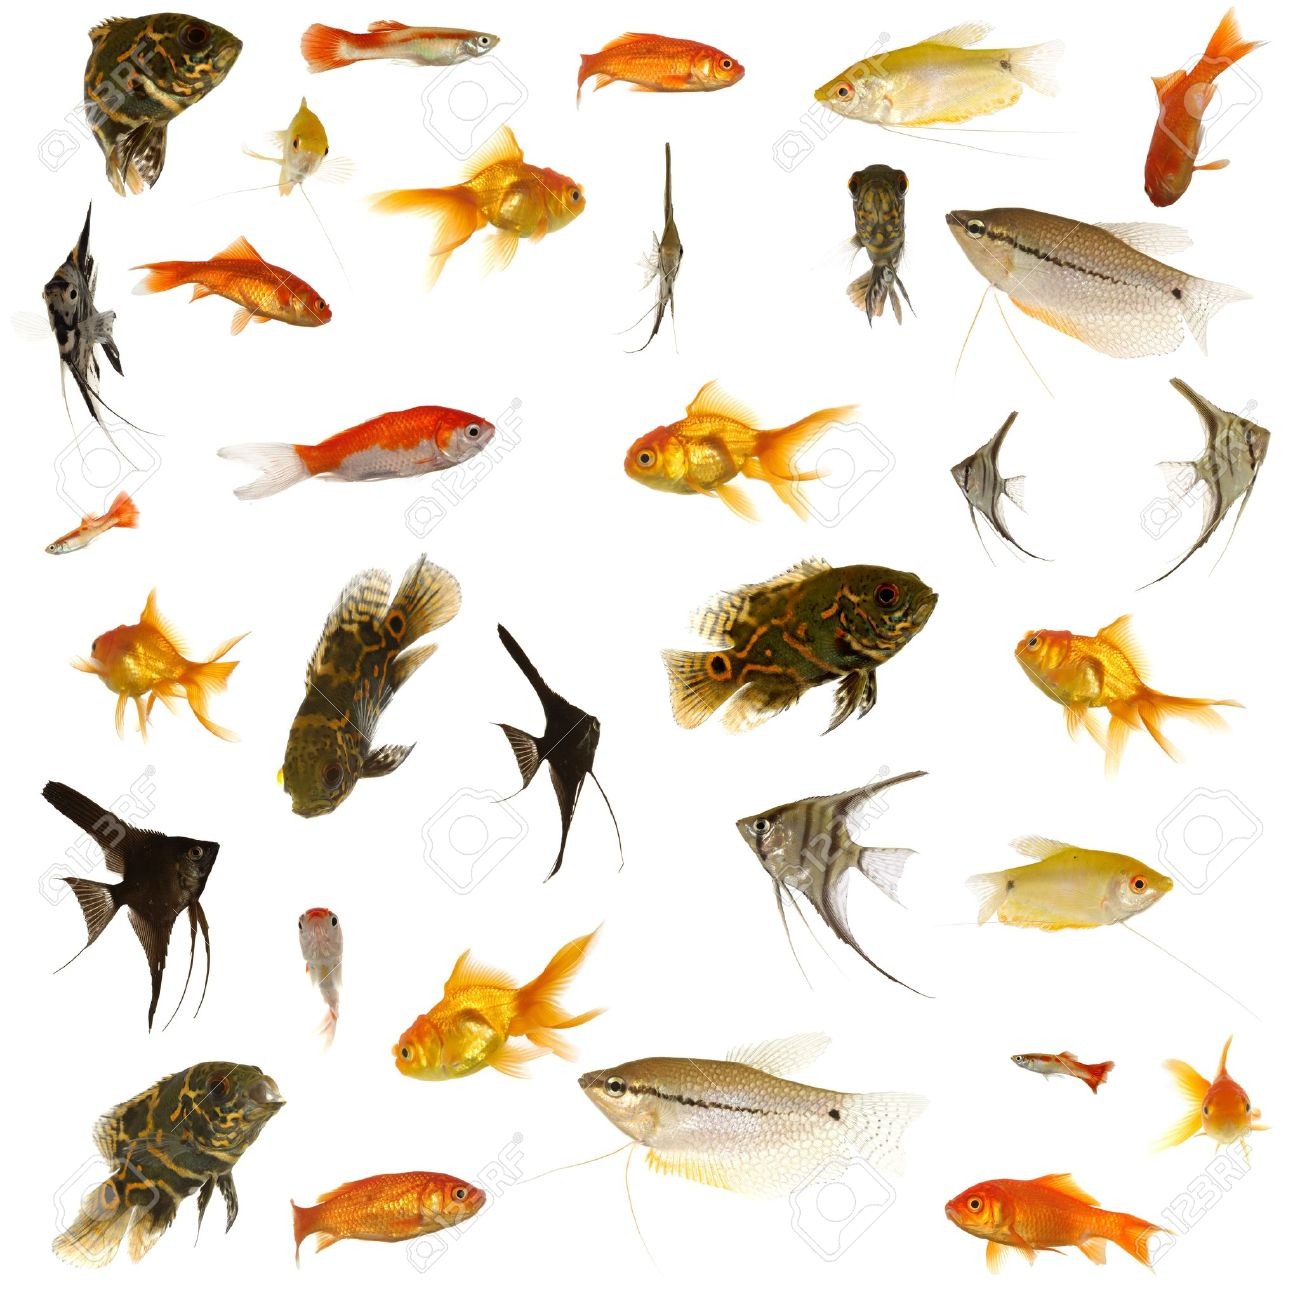 Fish collection with many different tropical fish. Stock Photo - 2486645